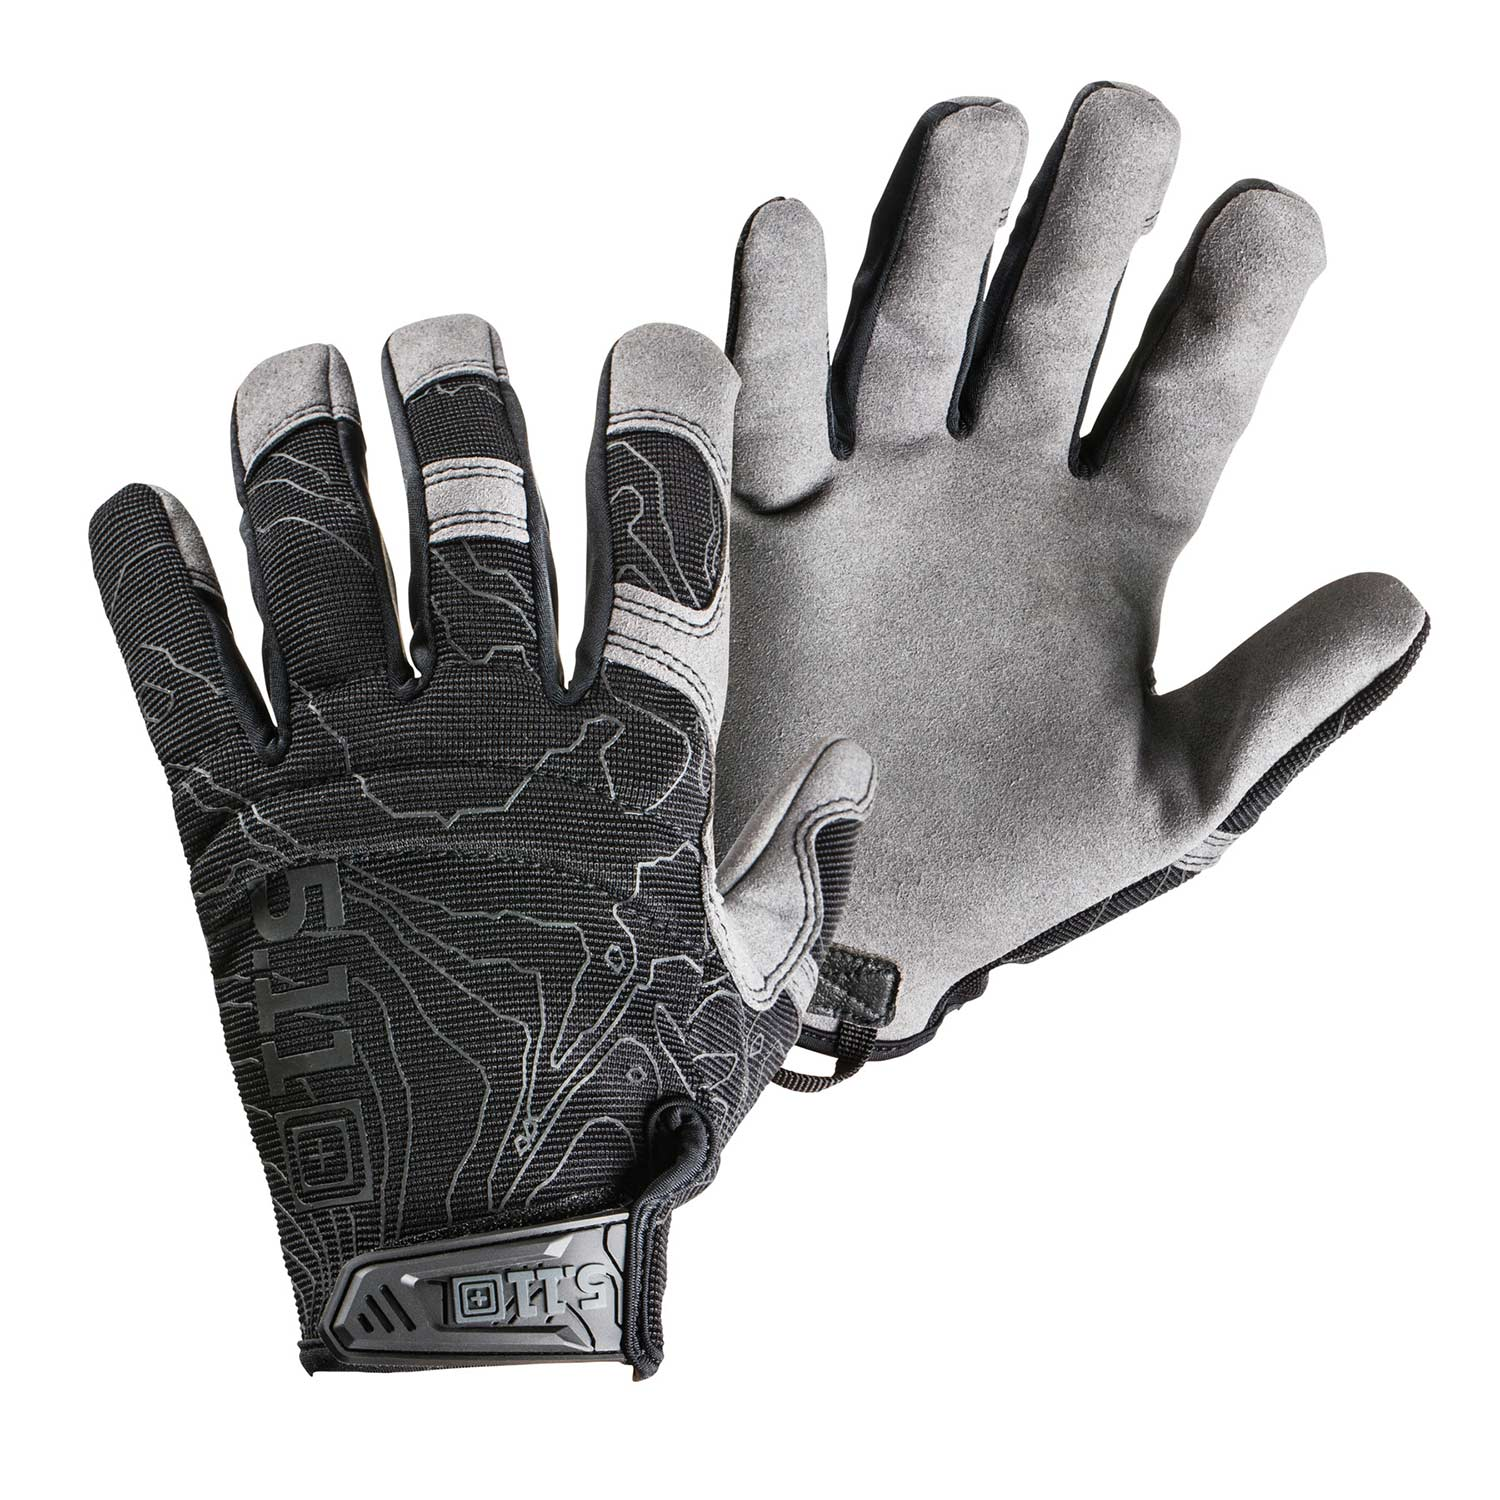 5.11 High Abrasion Tac Gloves